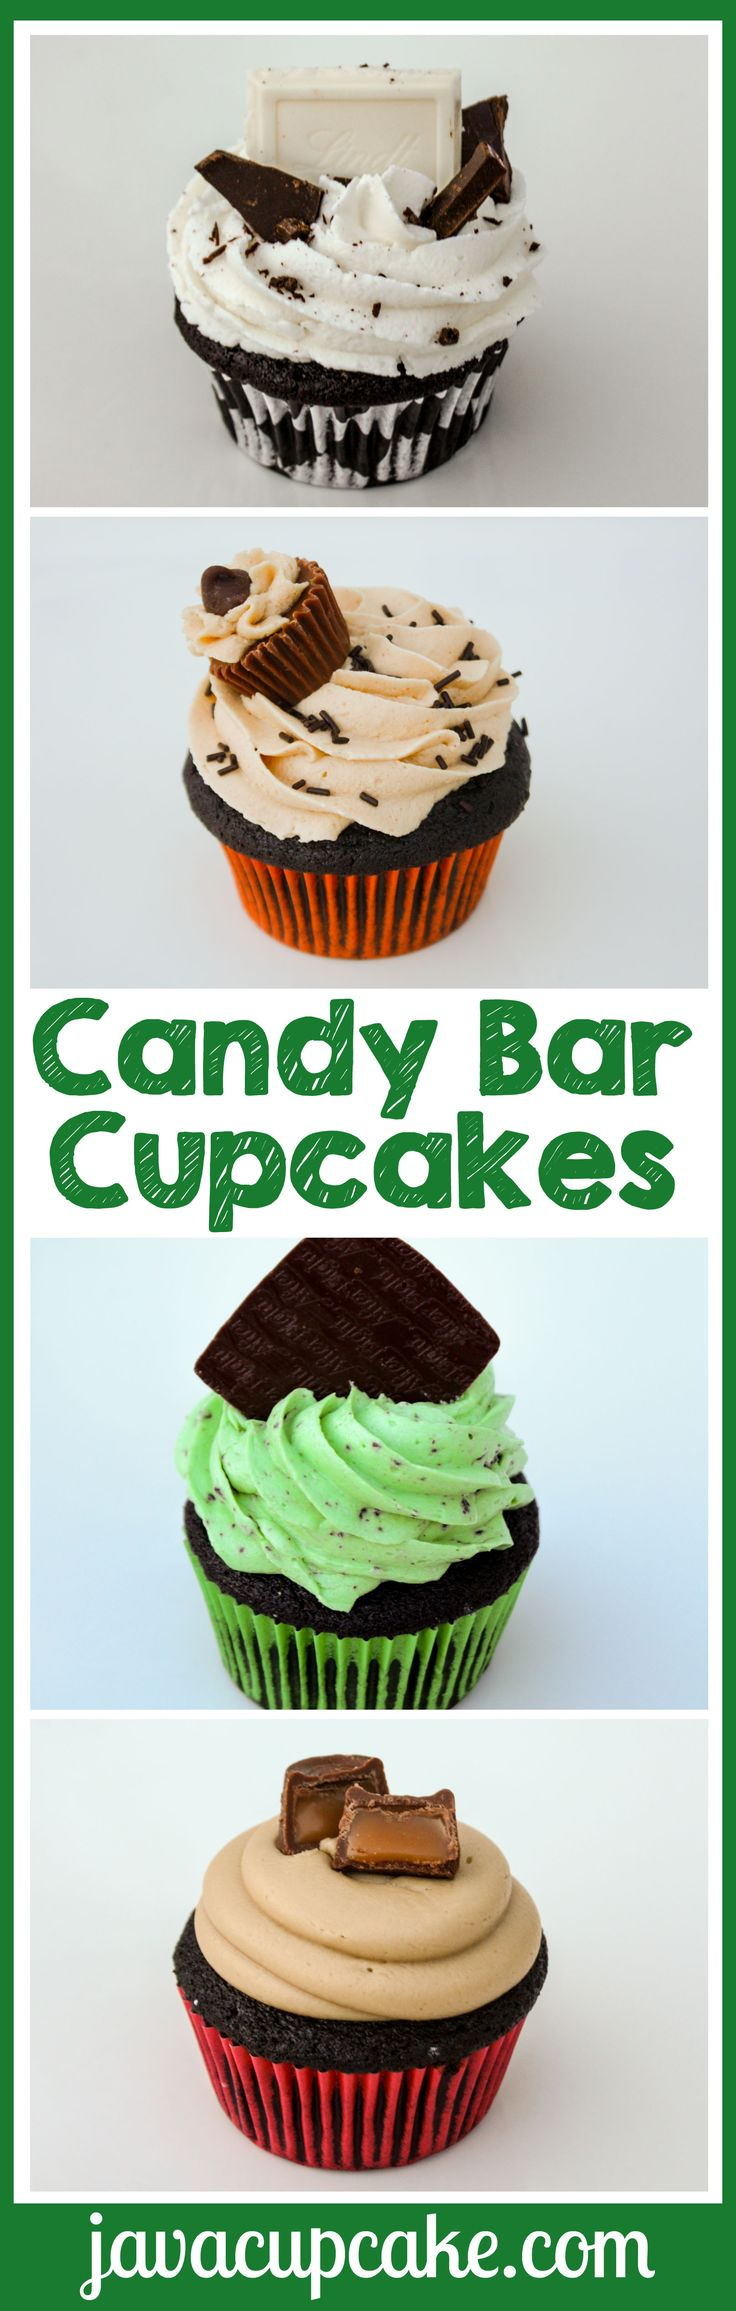 Rich dark chocolate cupcakes made into four very different, extremely delectable, incredibly delicious candy bar-inspired cupcakes! -JavaCupcake.com